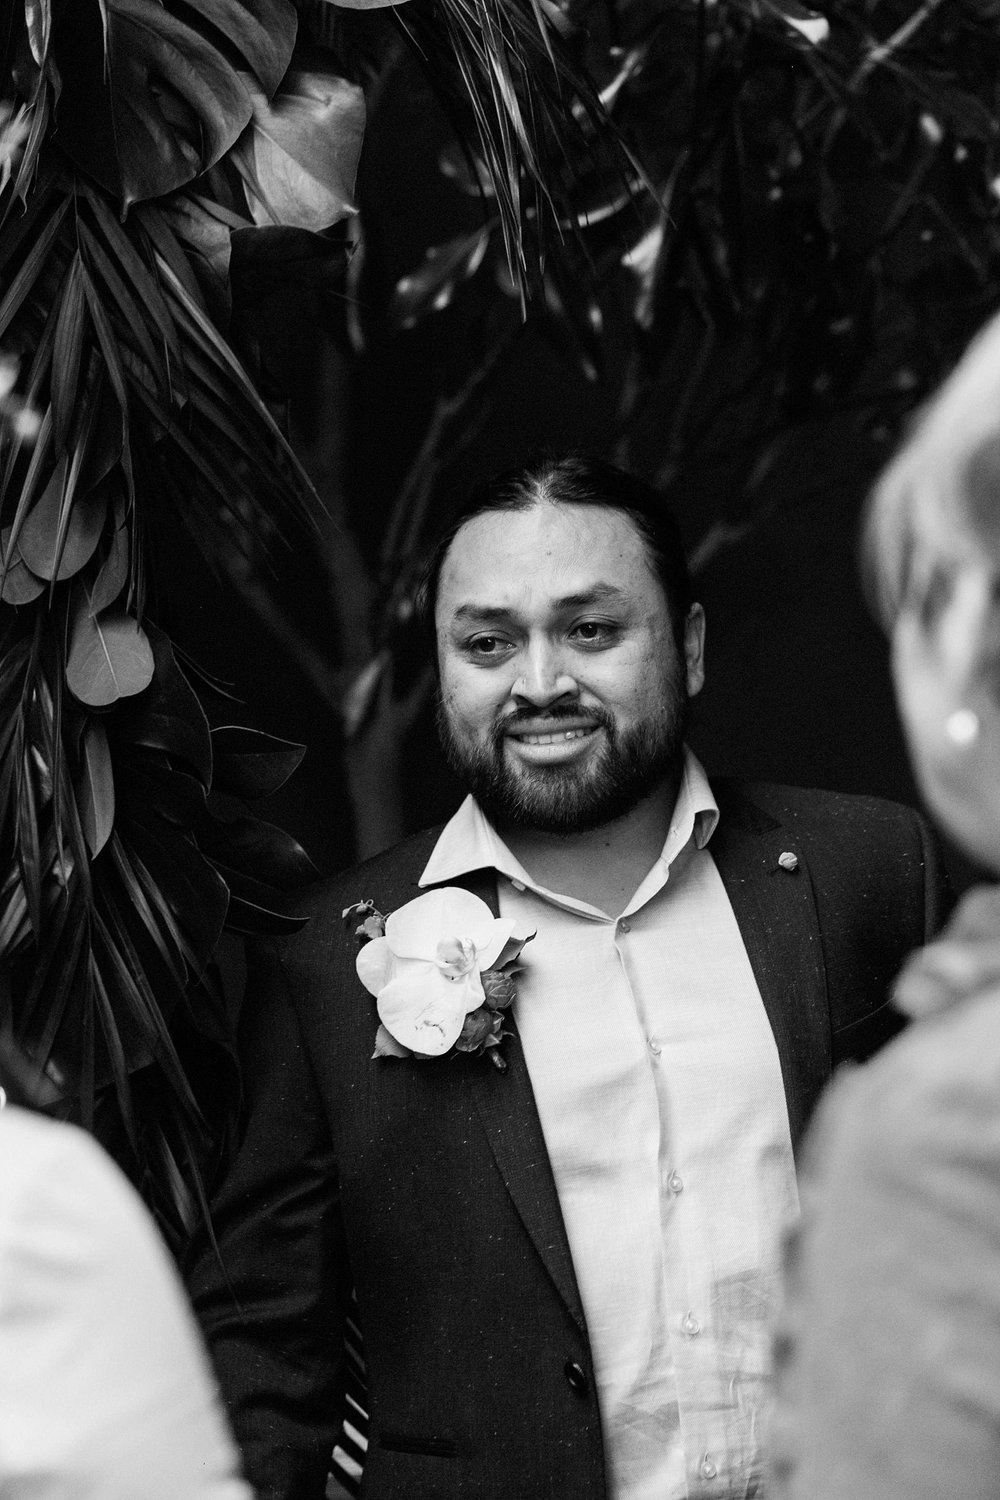 melbourne_wedding_photography_0001-min.jpg